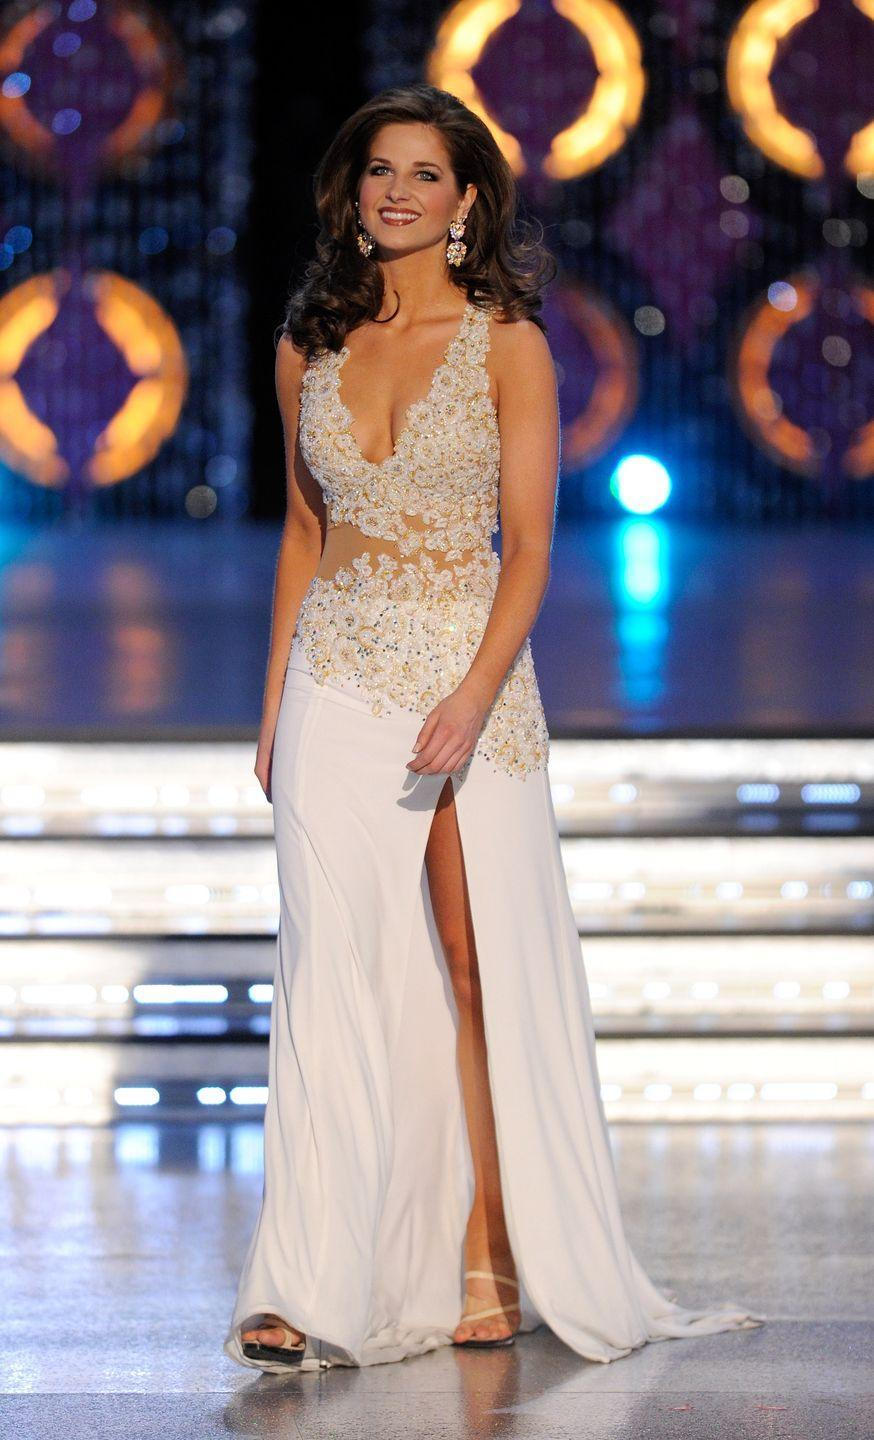 <p>Miss Louisiana, Hope Anderson, spiced things up with a bare midriff and strategically-placed flowers in 2012.</p>